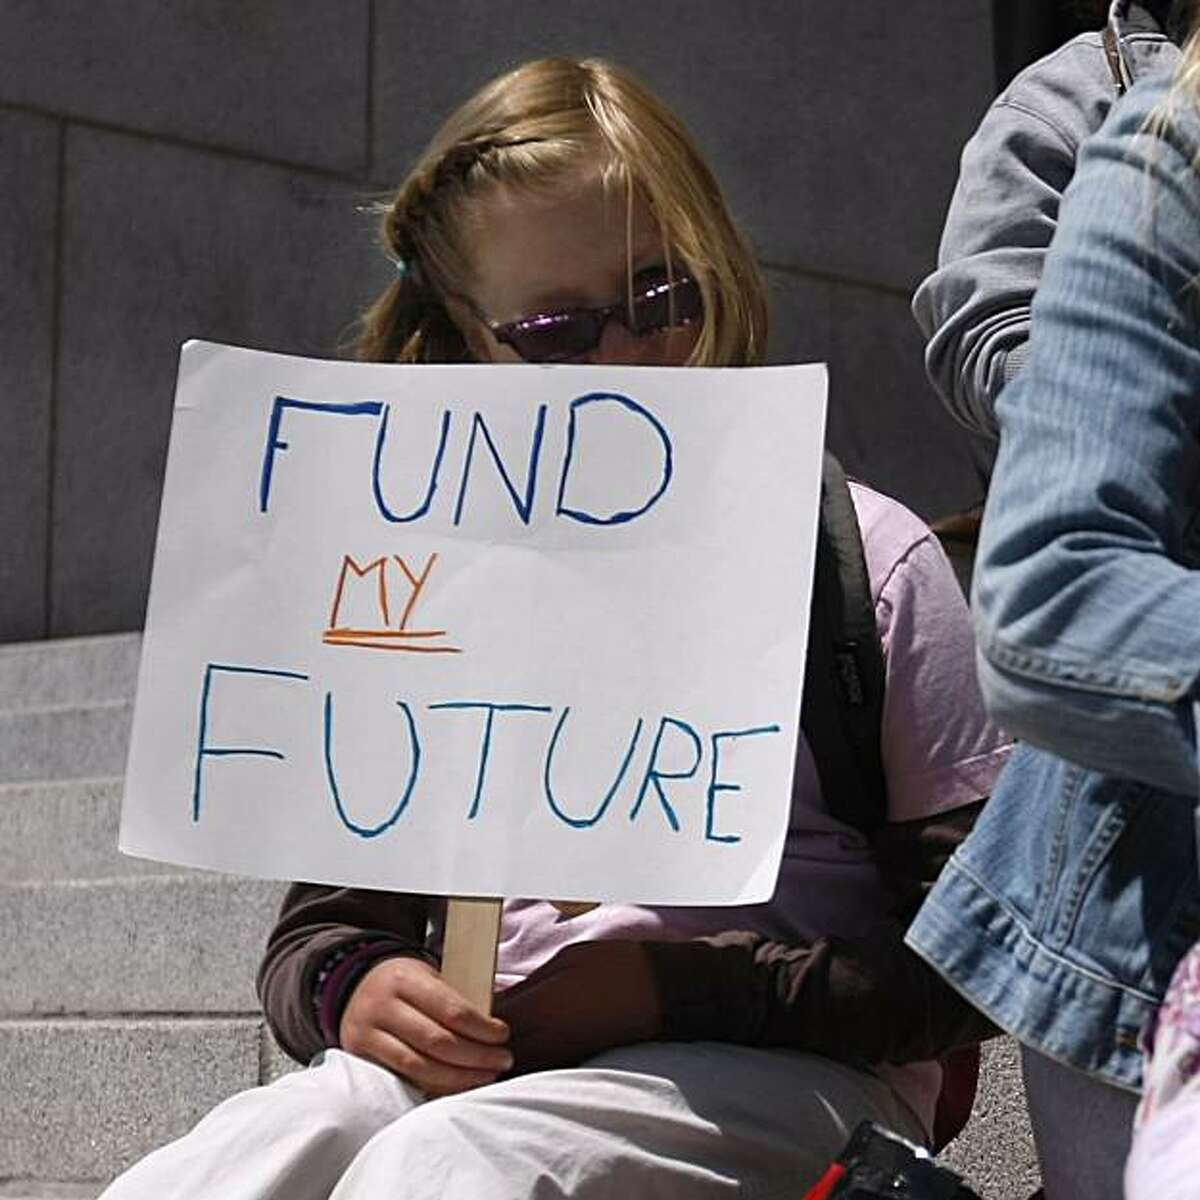 Jessie Moore, 8, of San Francisco, who is going into the fourth grade, sits with others gathered outside the Rene C. Davidson Alameda County Courthouse, Monday July 12, 2010, in Oakland, Calif. The group were there to announce the suit against the state over a school funding system that they say doesn't serve the neediest kids.